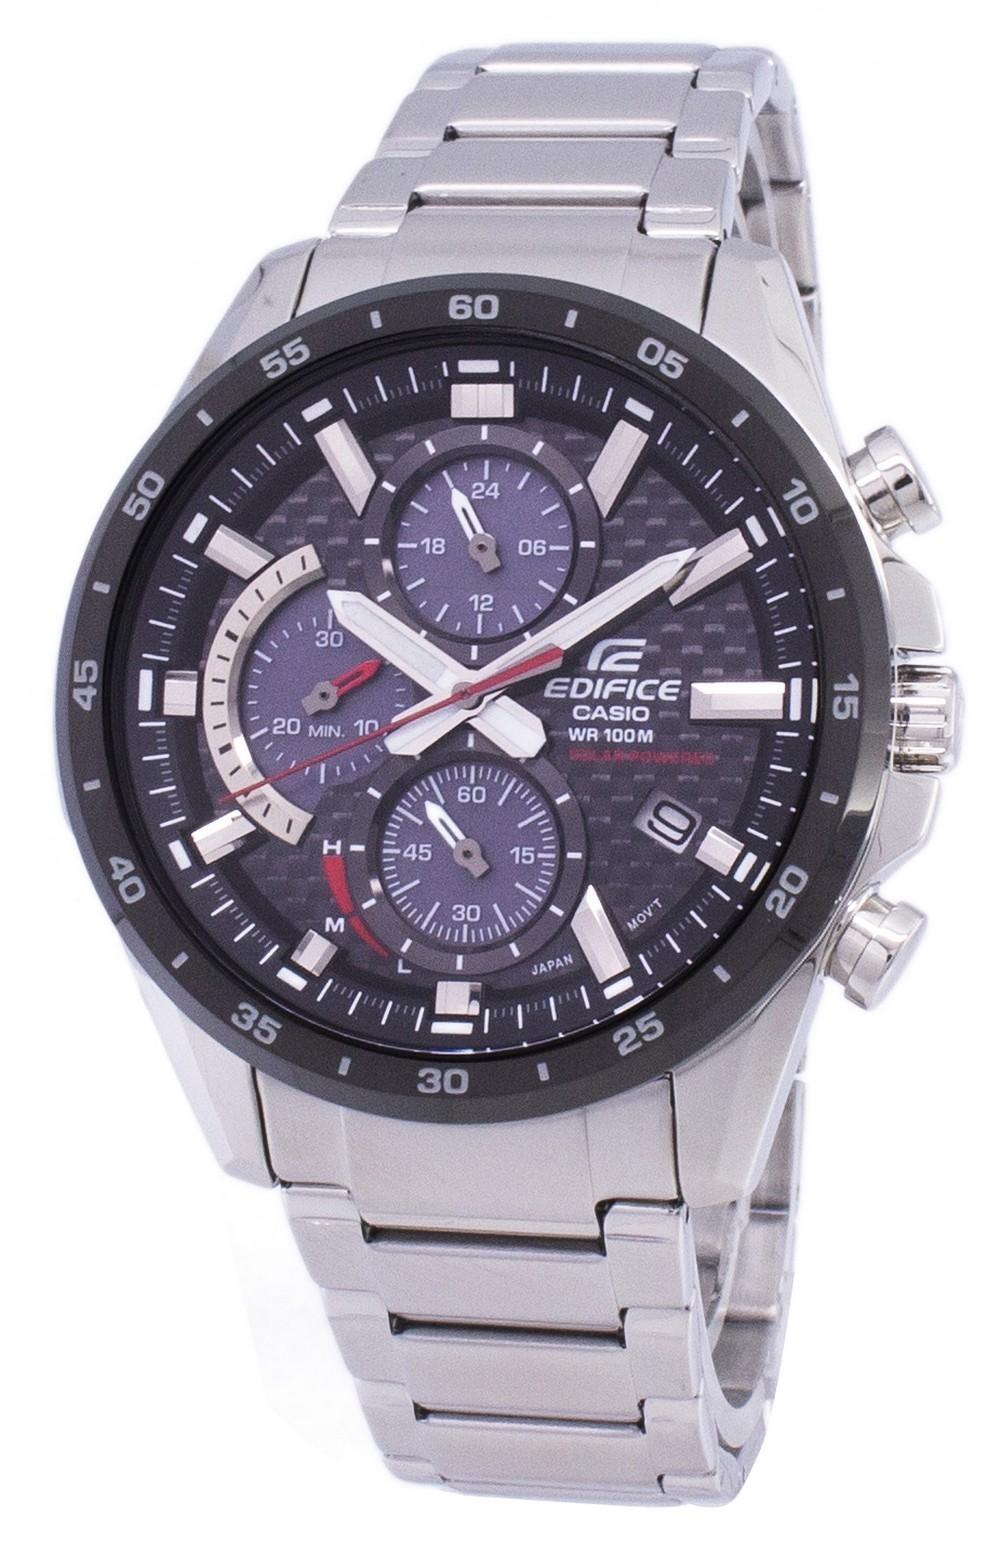 Casio Edifice Chronograph Solar EQS900DB-1AV EQS-900DB-1AV Men's Watch